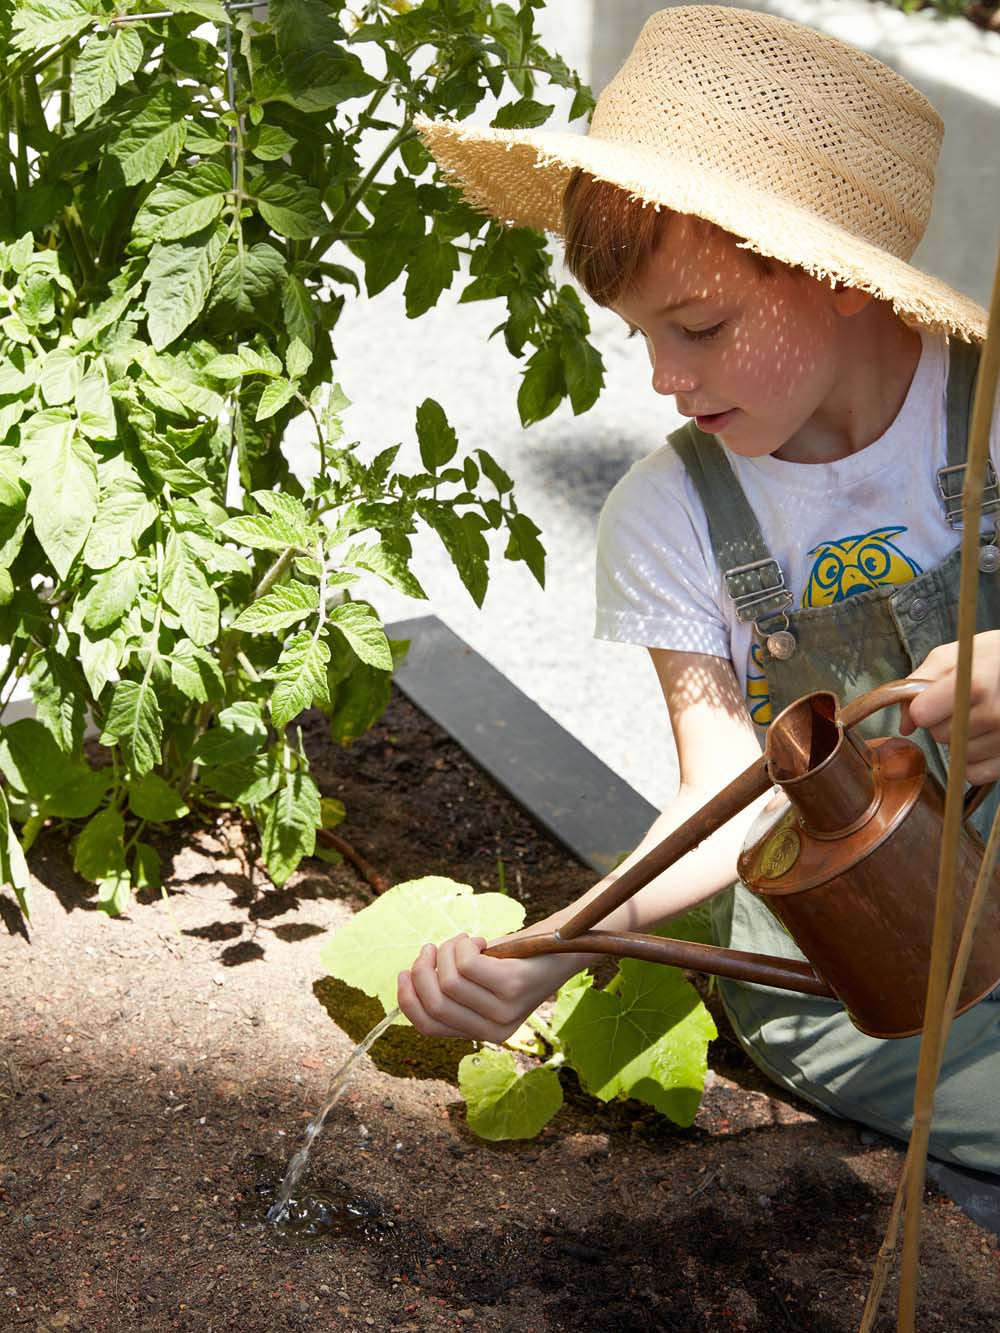 Erin Hiemstra's son watering plants